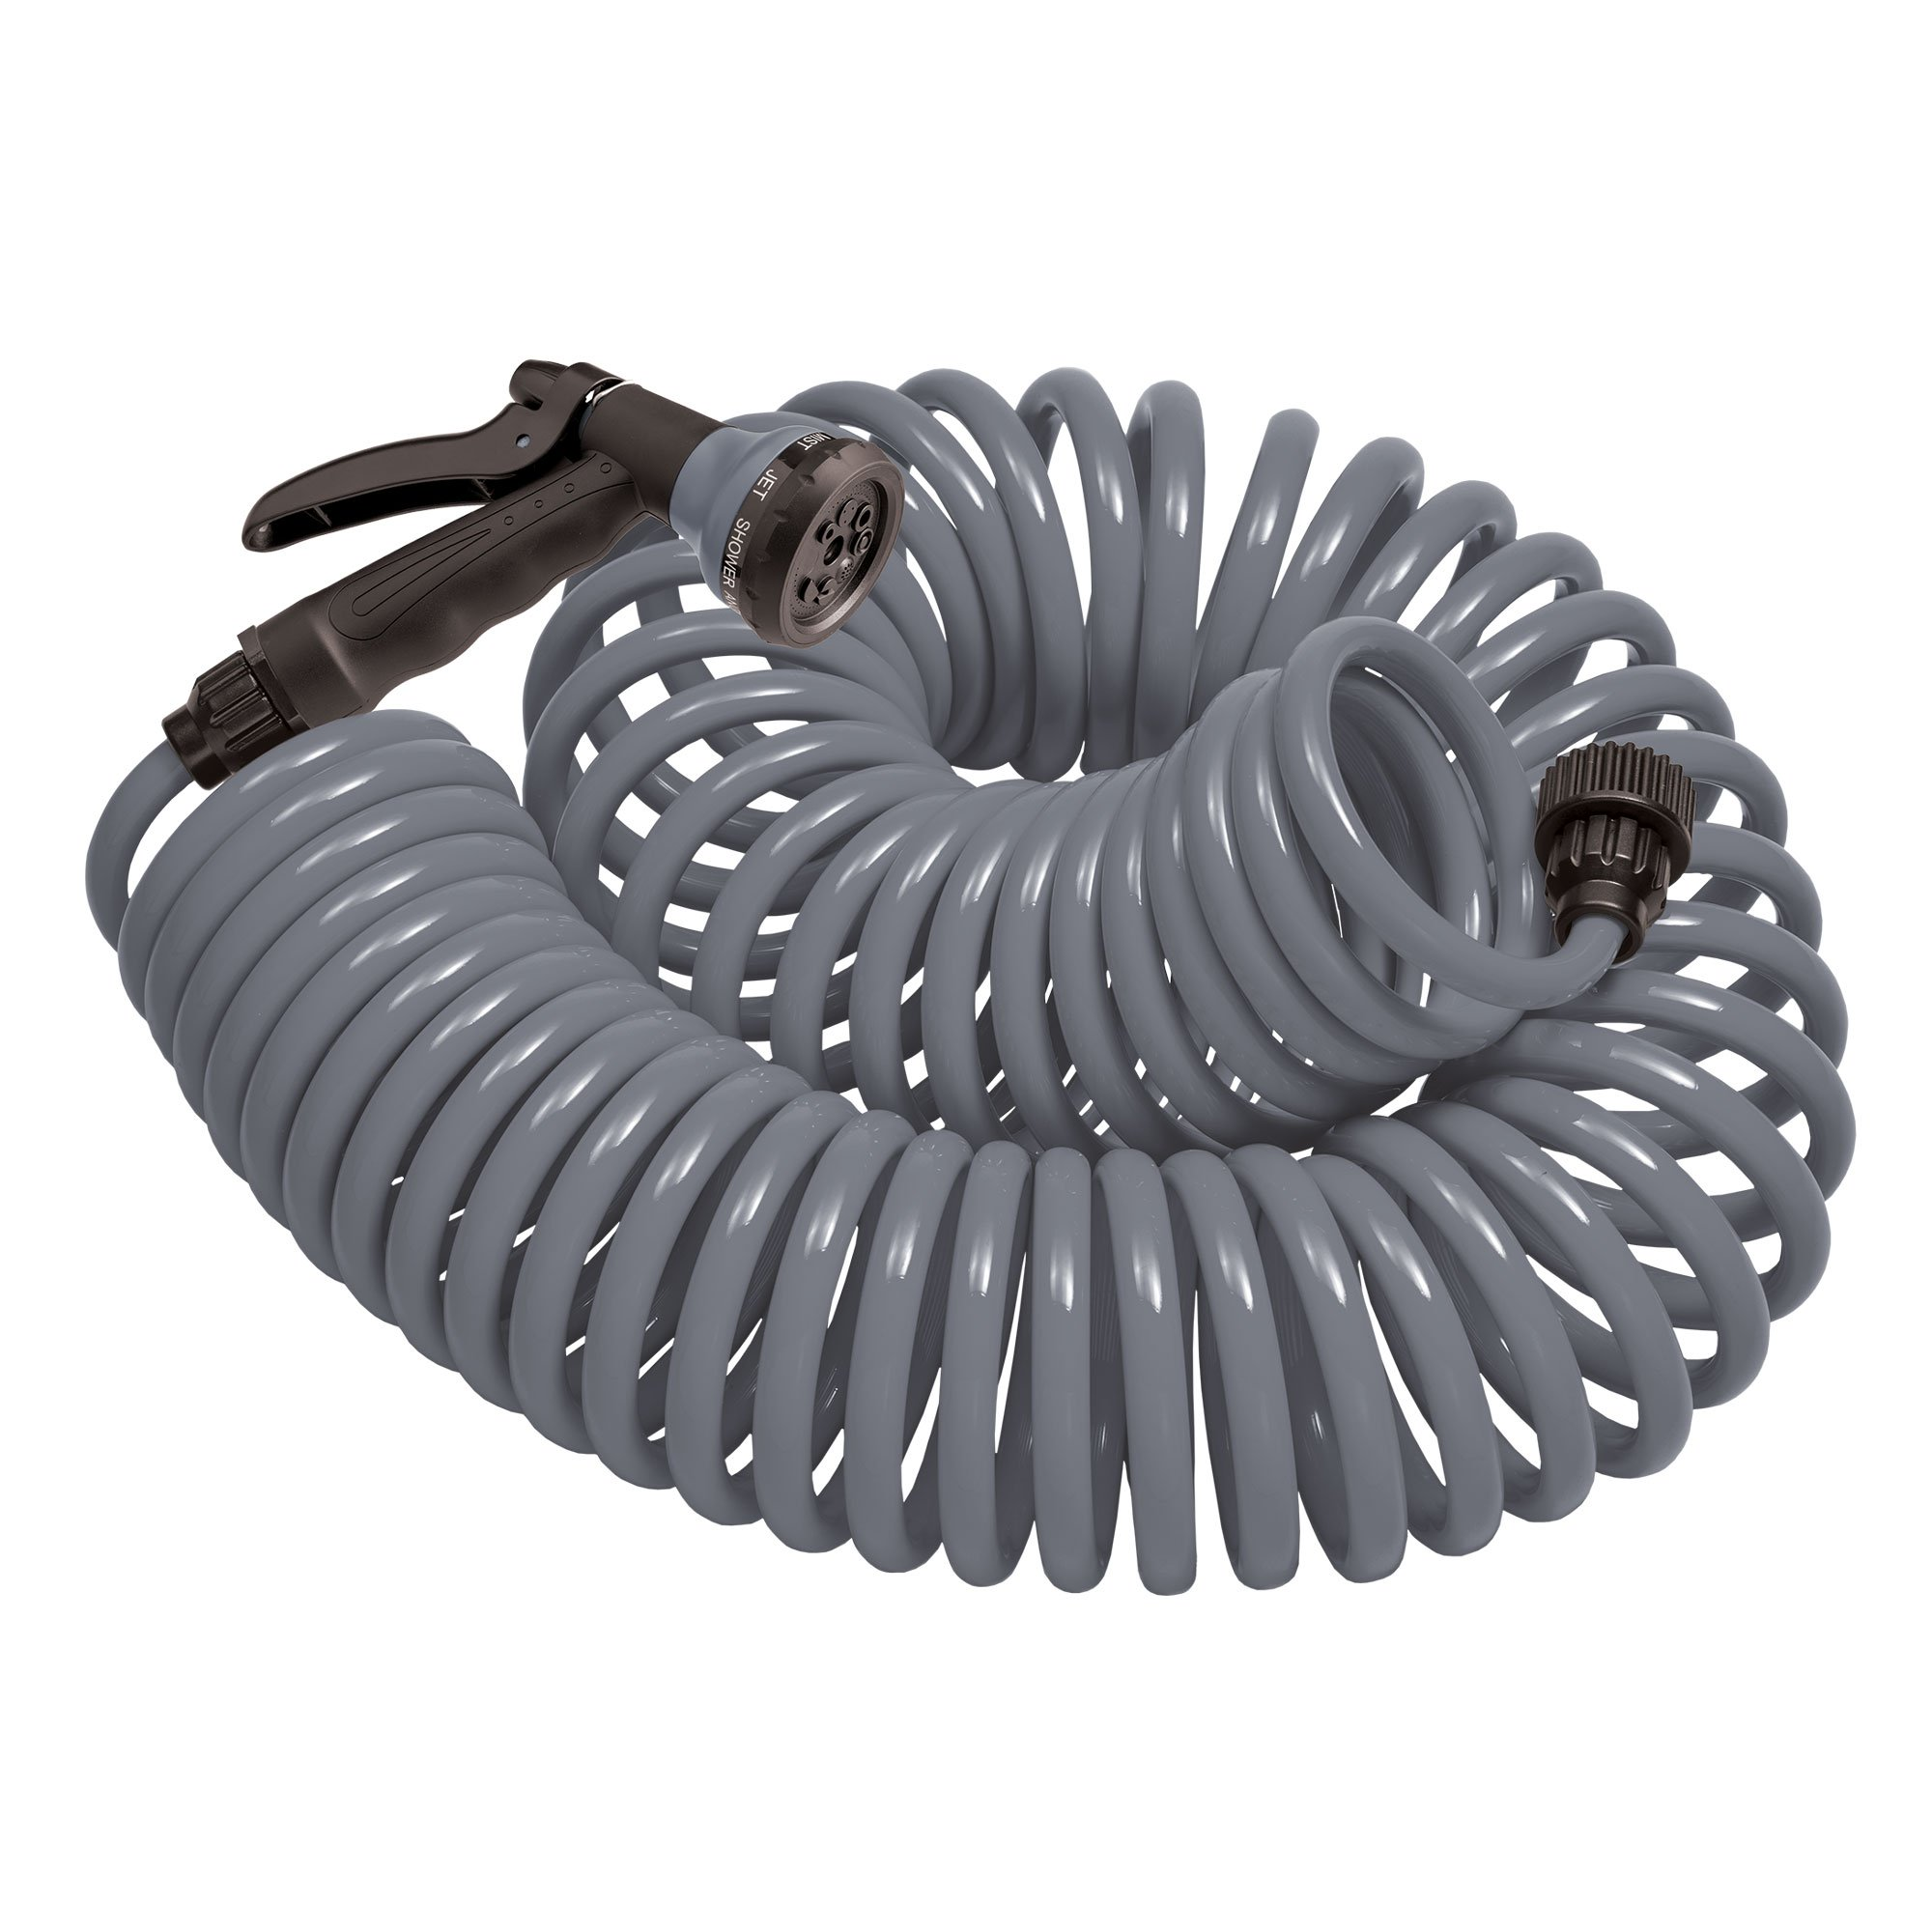 Orbit 50 Foot Gray Coil Garden Hose with ABS Threads and 8 Spray Pattern Nozzle